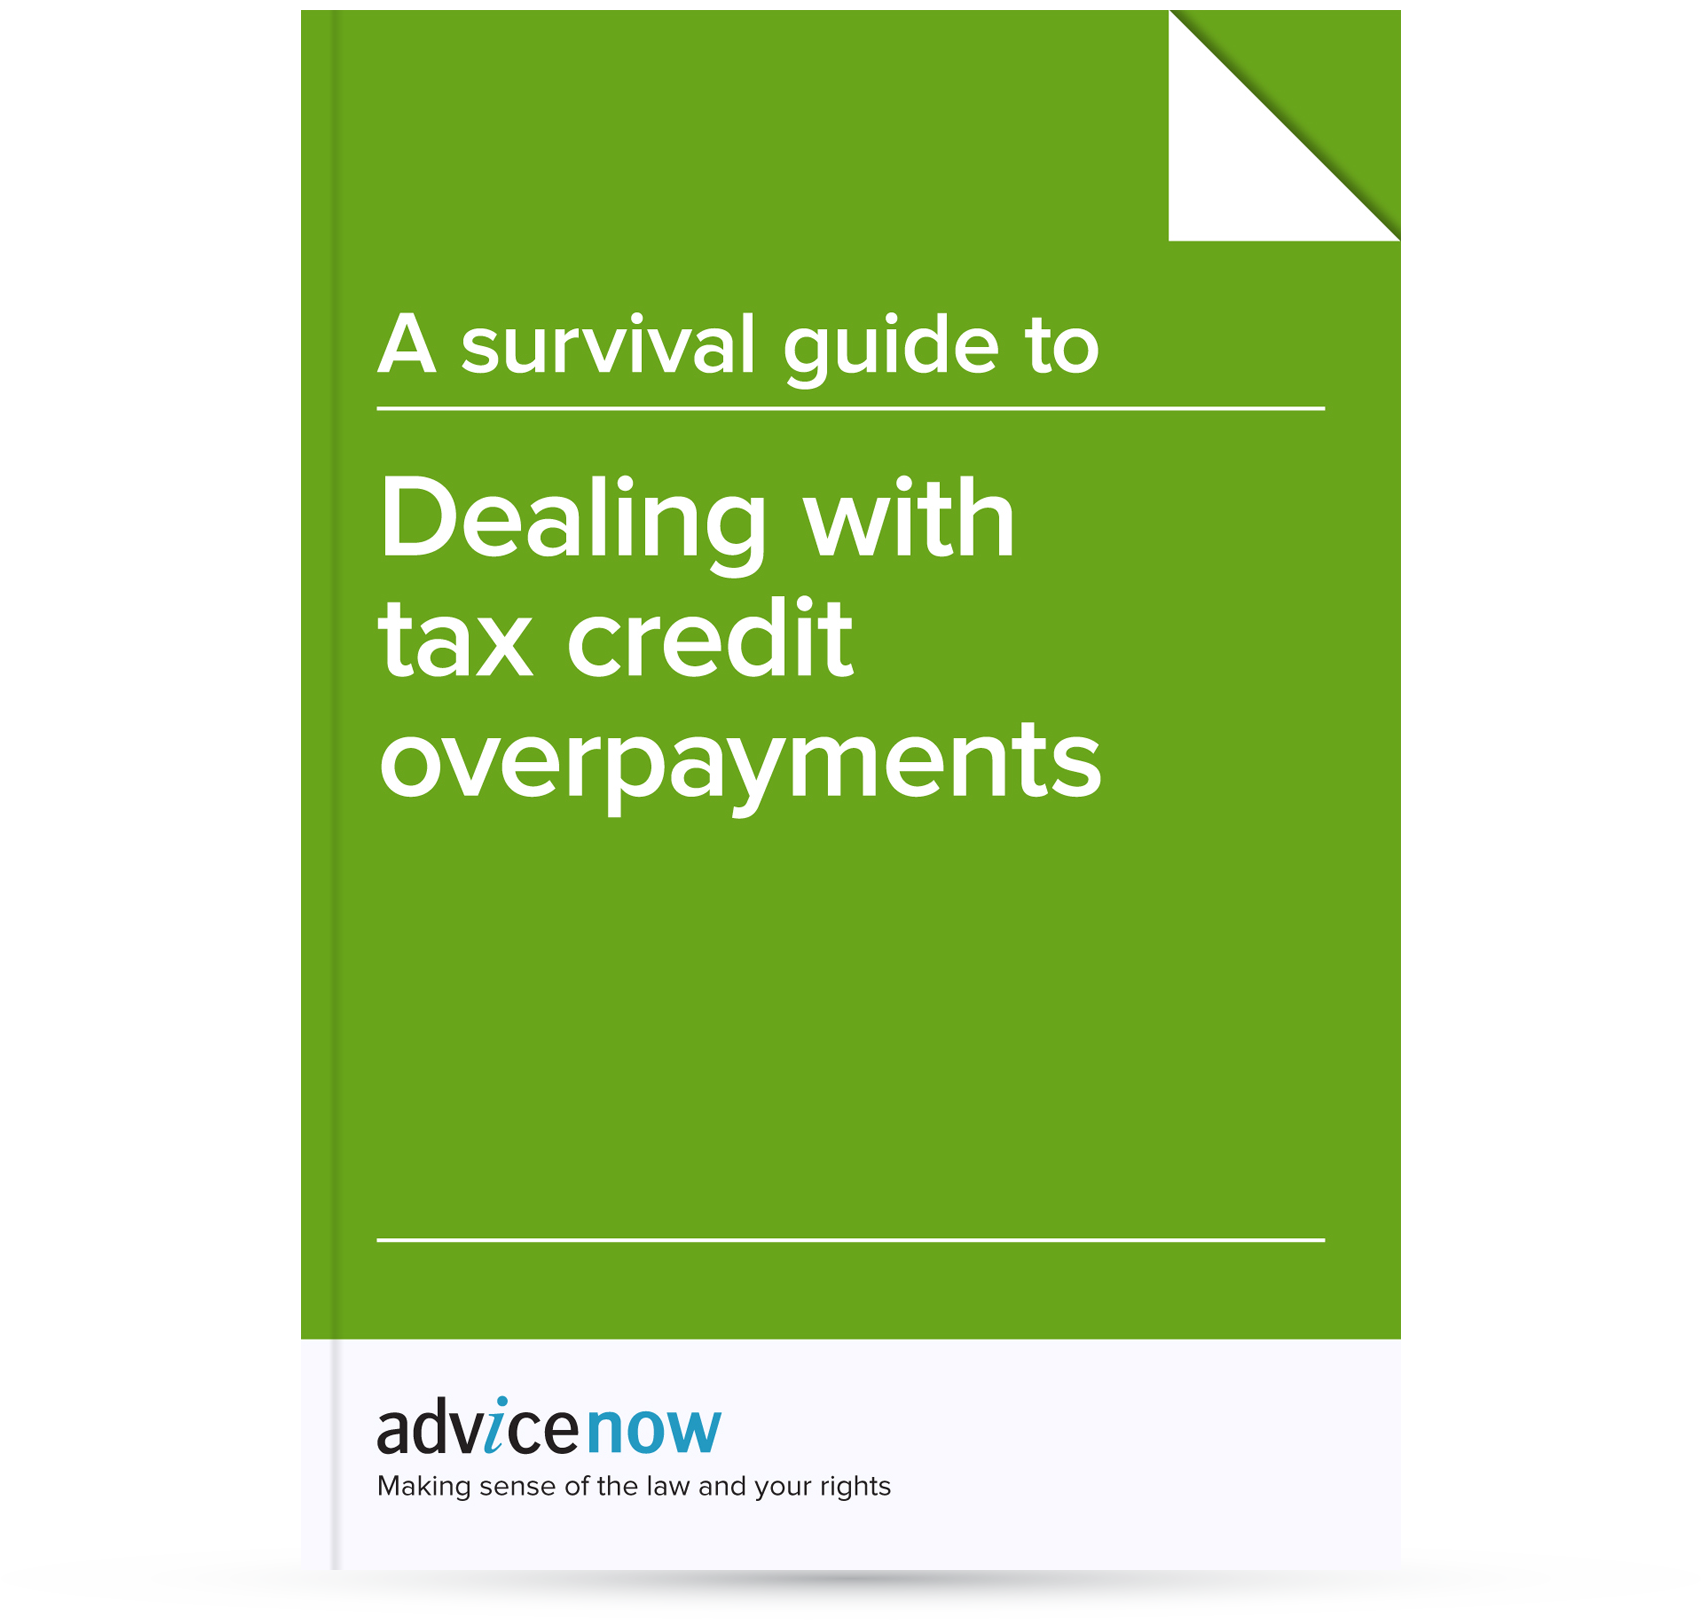 A Survival Guide To Dealing With Tax Credit Overpayments  Advicenow